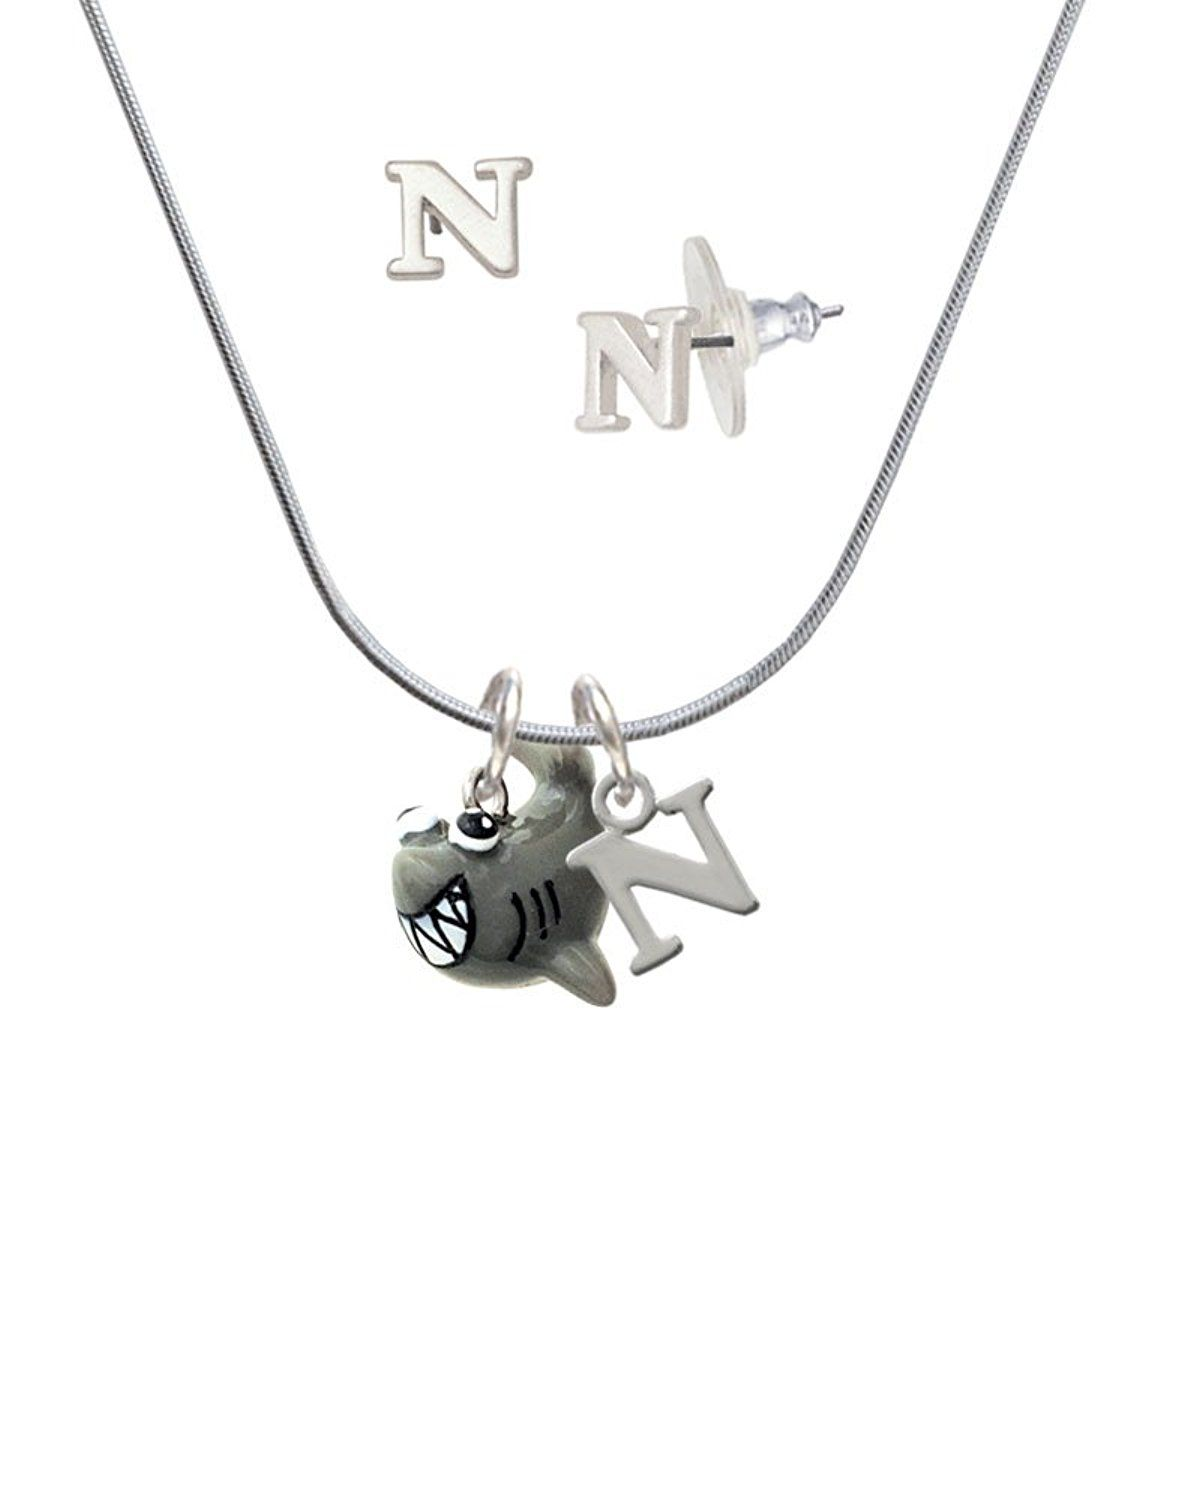 Resin shark n initial charm necklace and stud earrings jewelry set